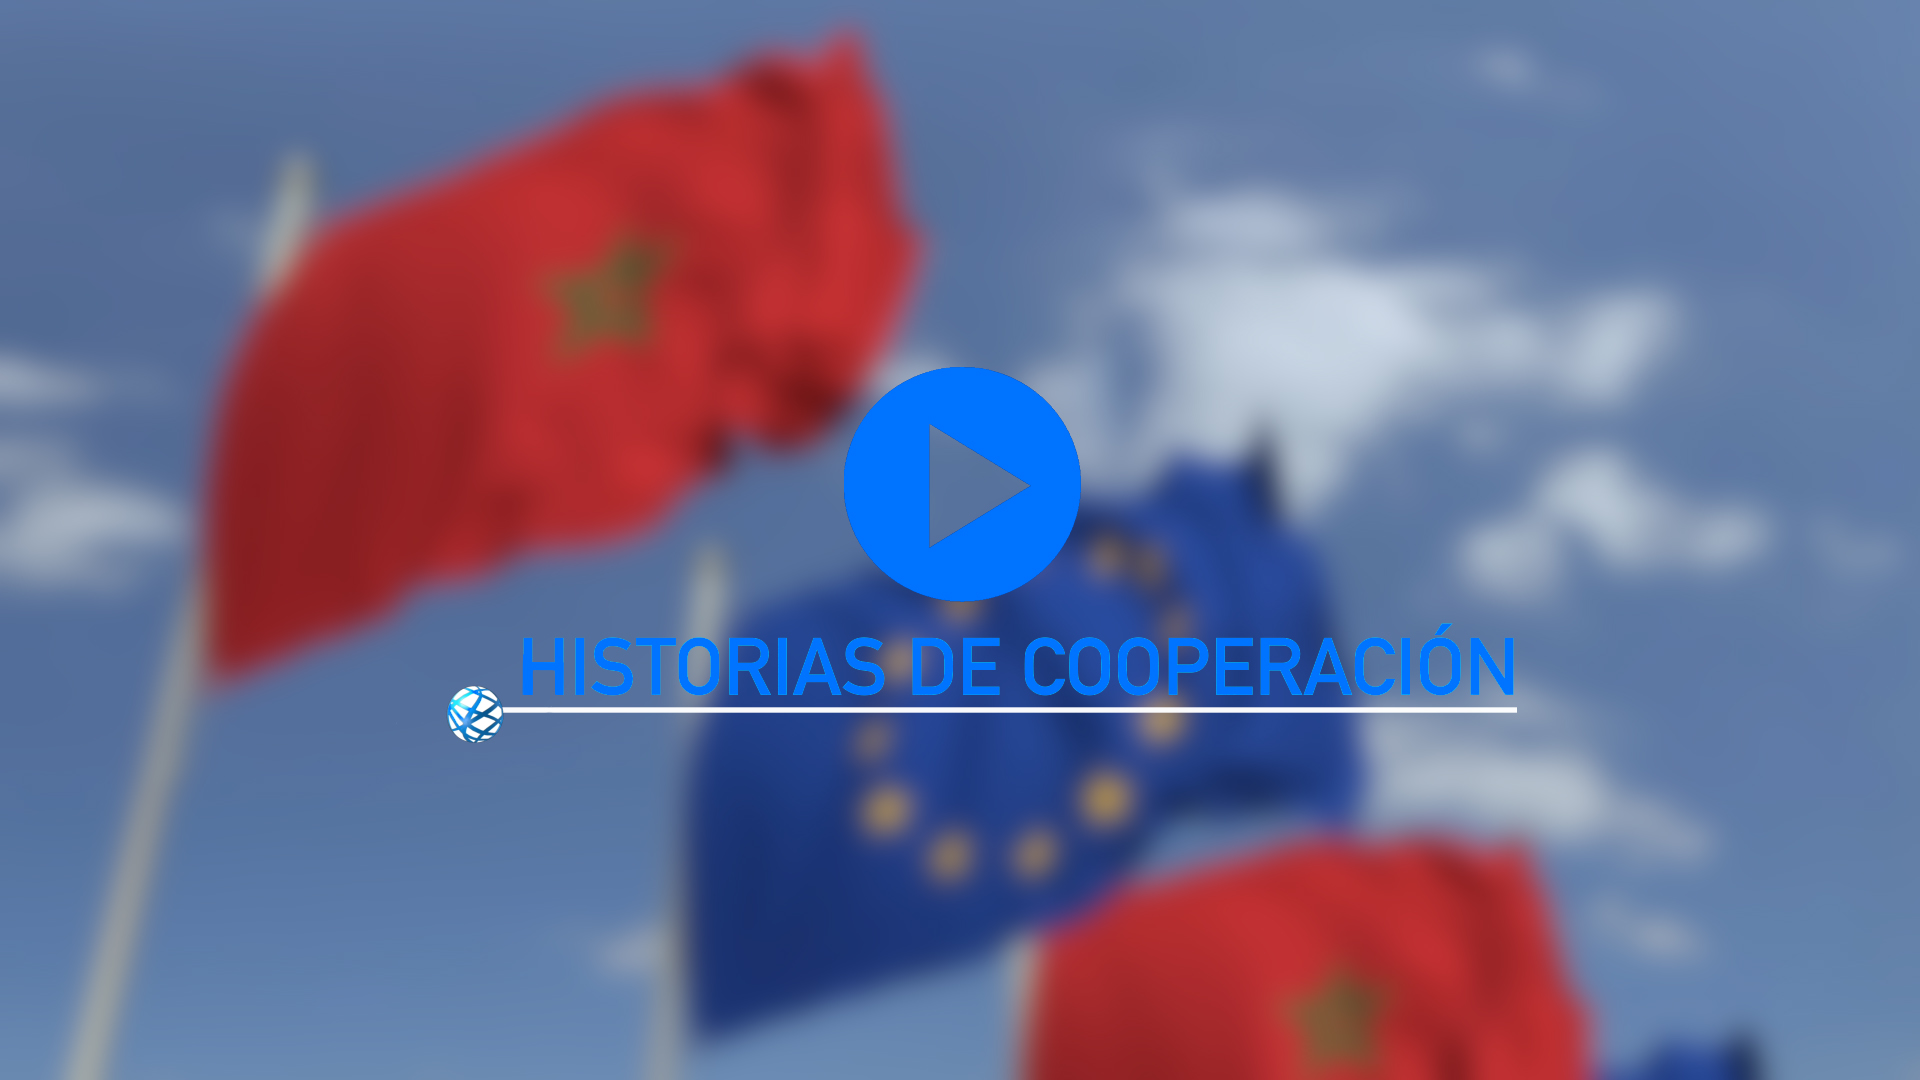 This European Twinning project between Morocco and Spain, managed by FIIAPP, has ended. It twinned public bodies from both countries to make the transporting of dangerous goods by road safer.